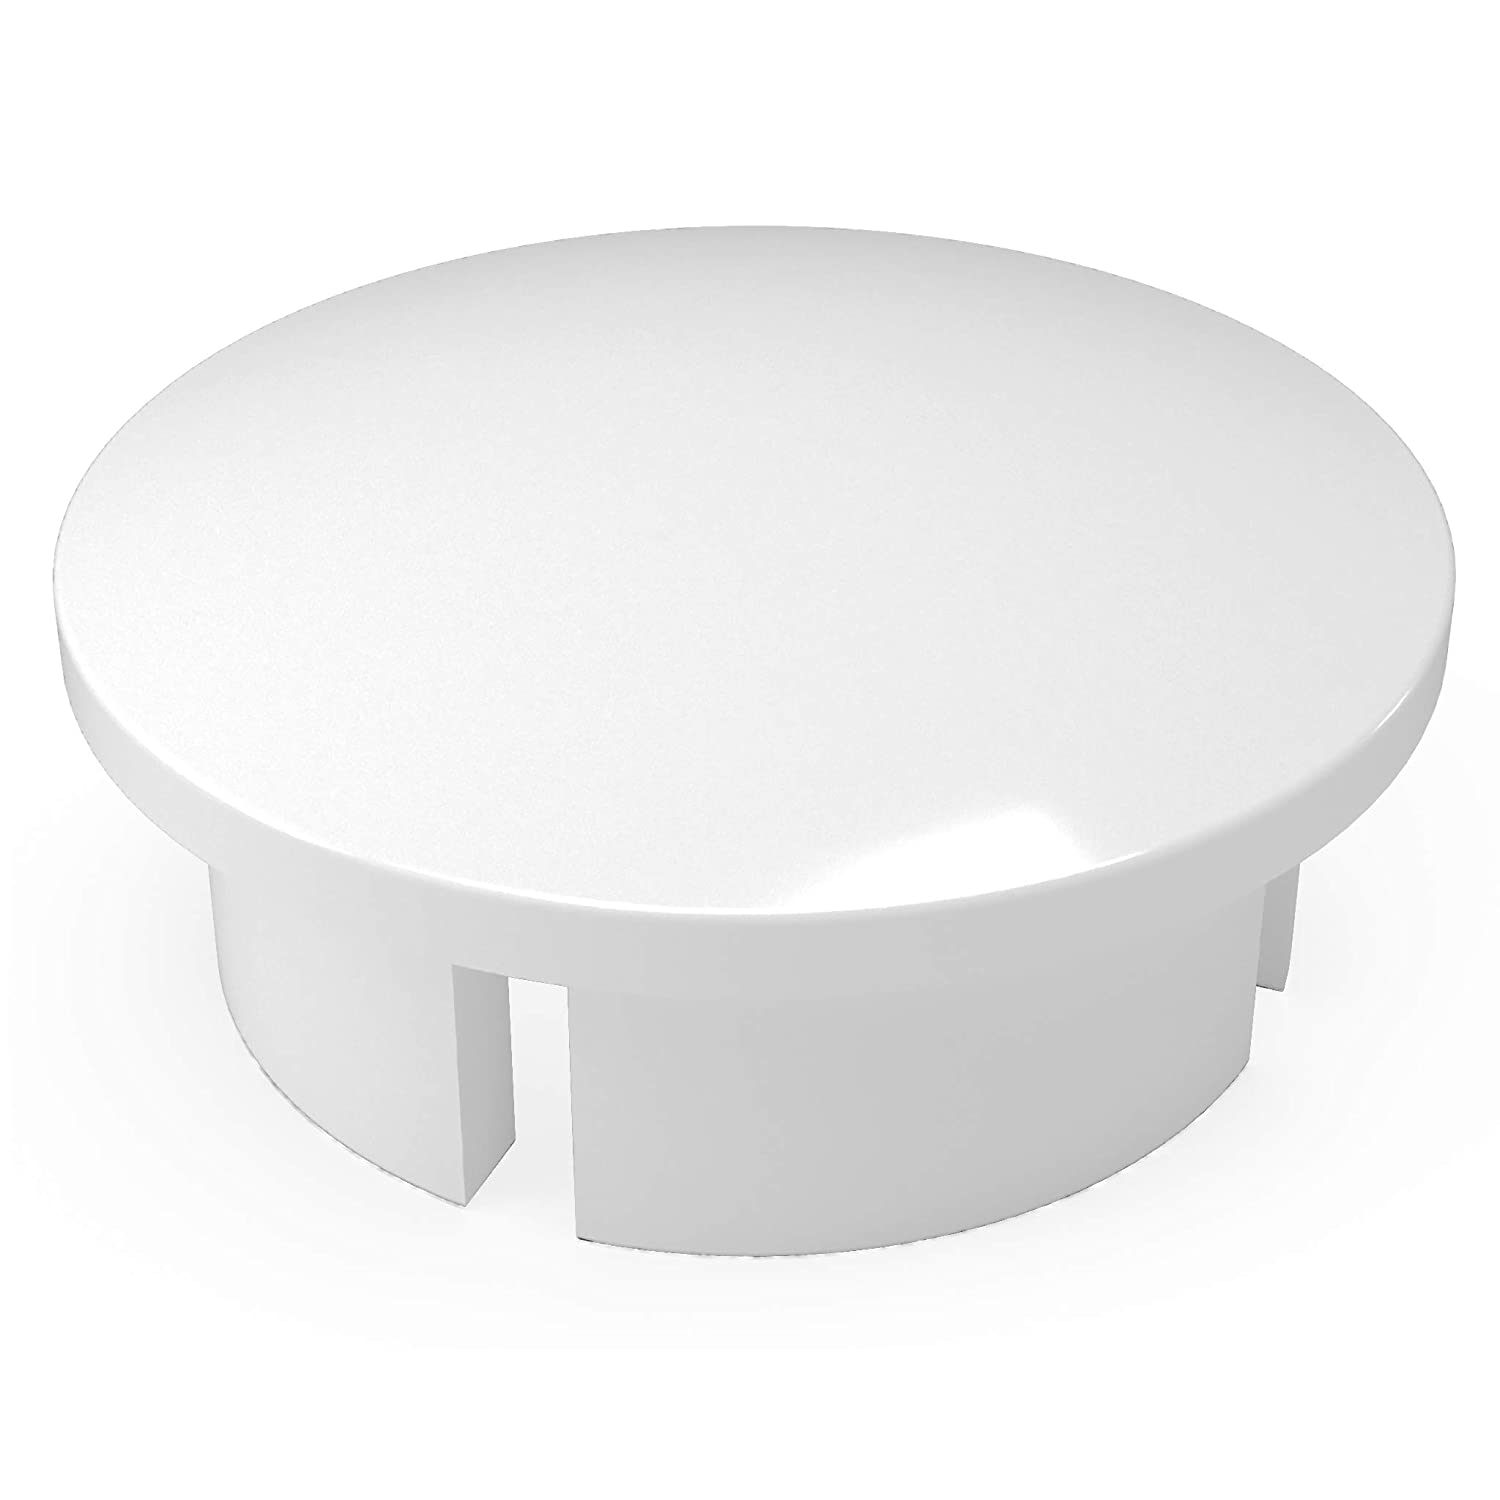 "FORMUFIT F001IDC-WH-10 PVC Internal Domed End Cap, Furniture Grade, 1"" Size, White (Pack of 10)"